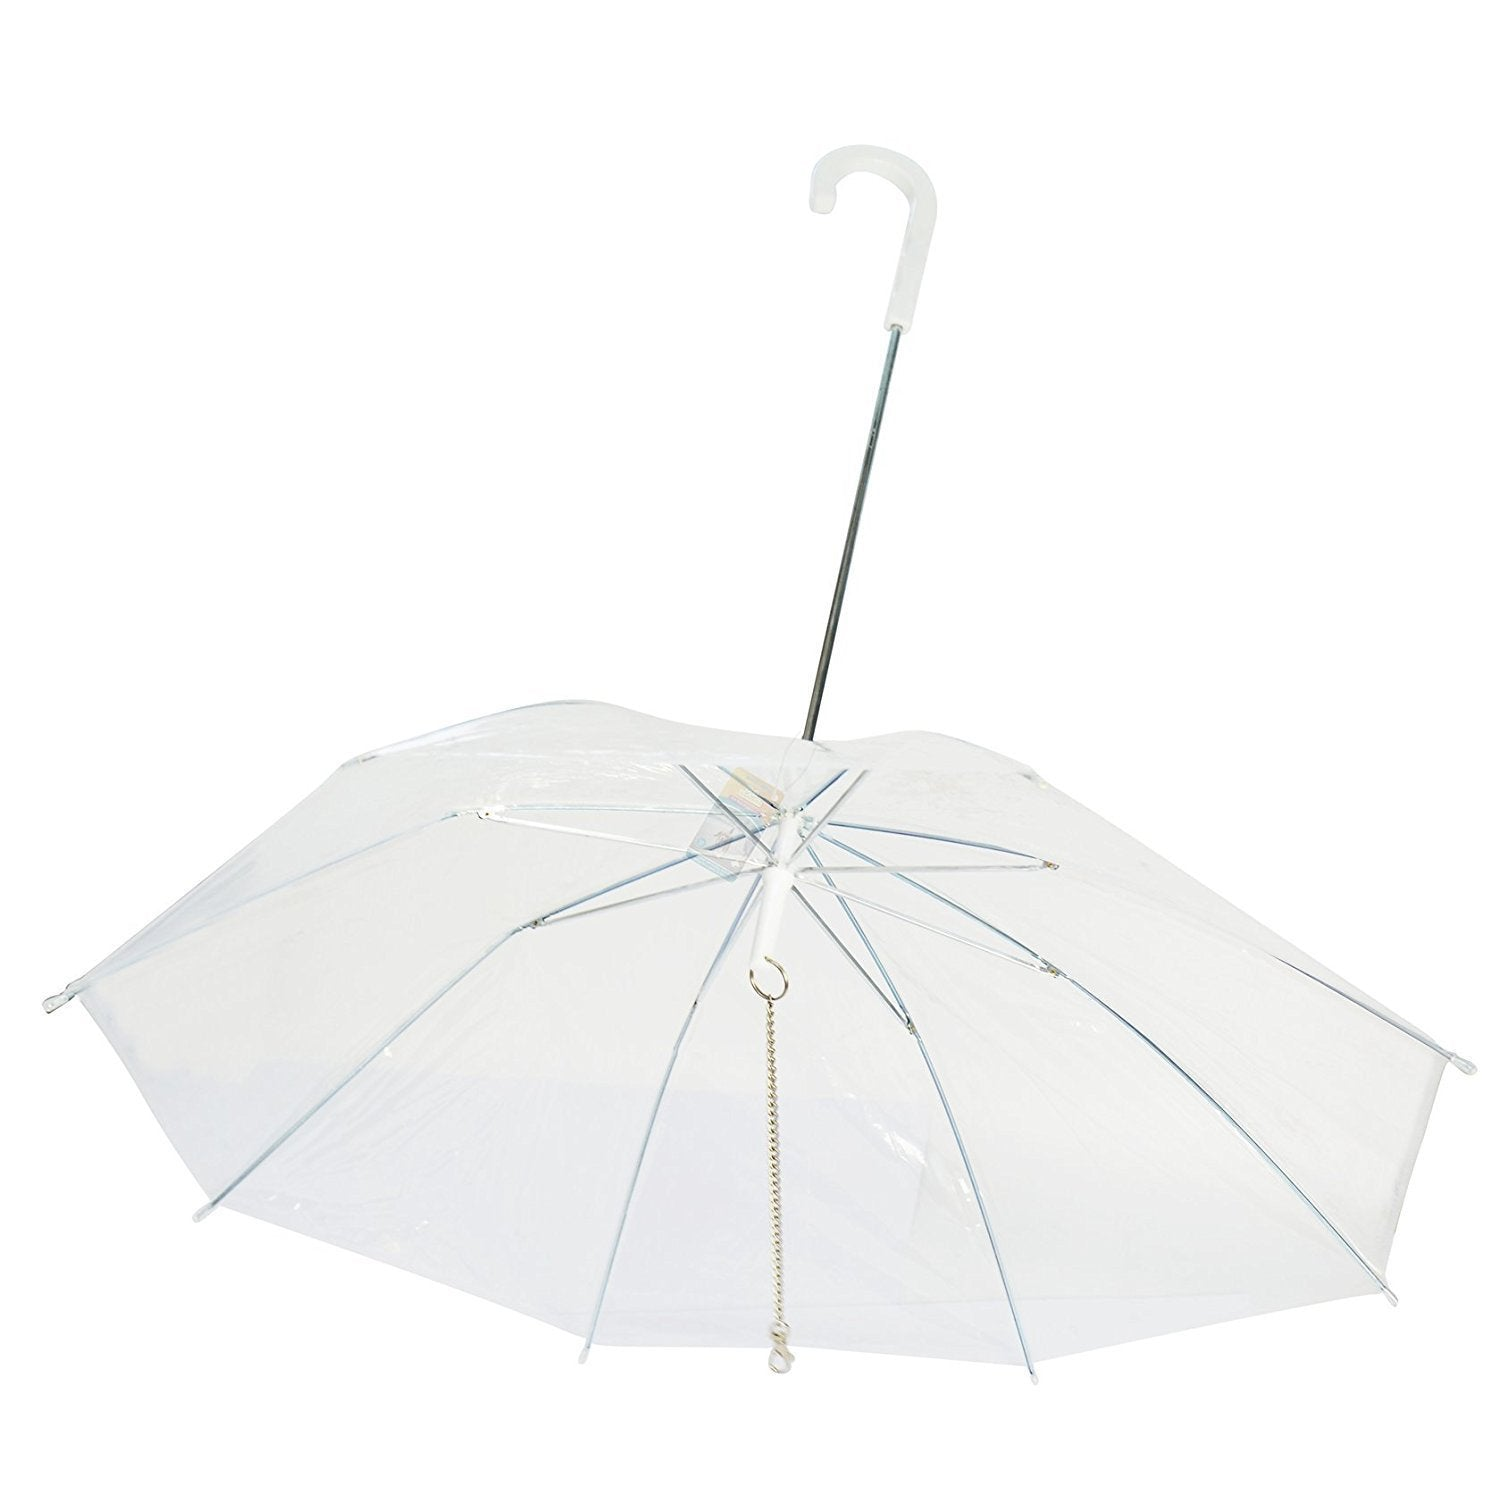 Pet Dog Umbrella